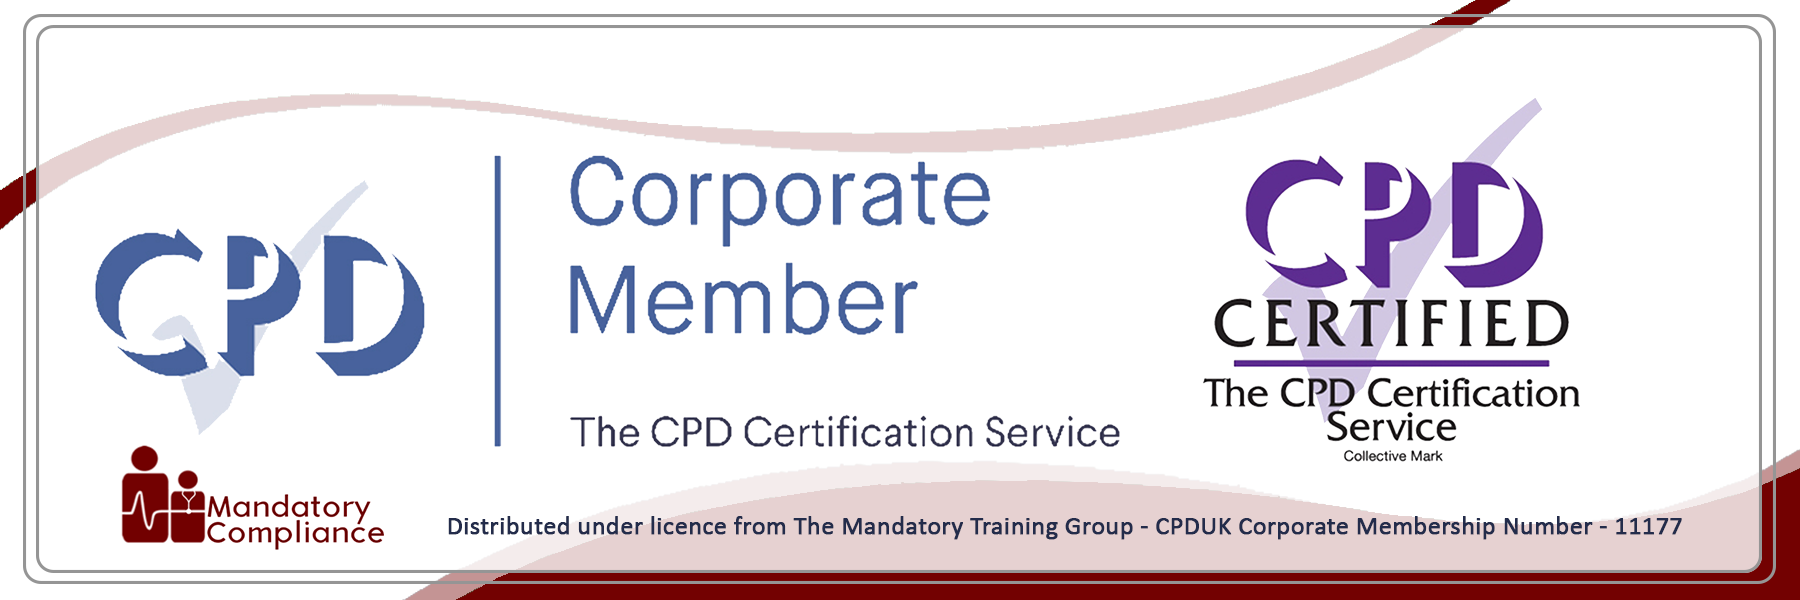 Care Certificate Standard 10 - Online Training Course - CPD Accredited - Mandatory Compliance UK -